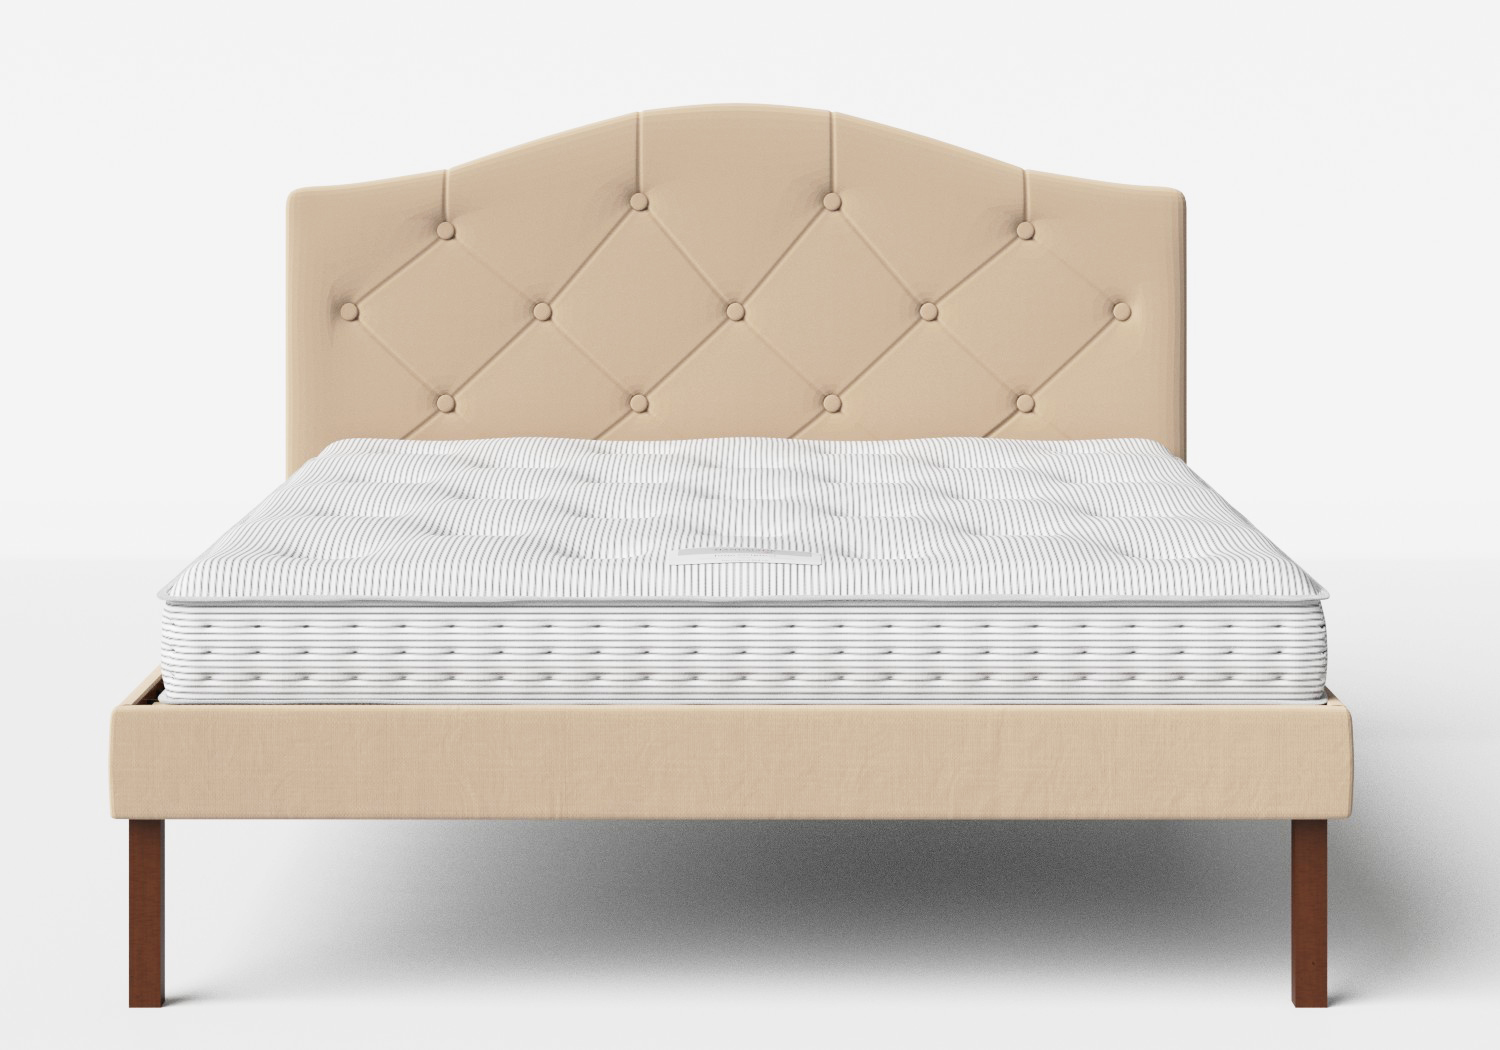 Yoshida Upholstered Bed with Natural fabric with buttoning shown with Juno 1 mattress